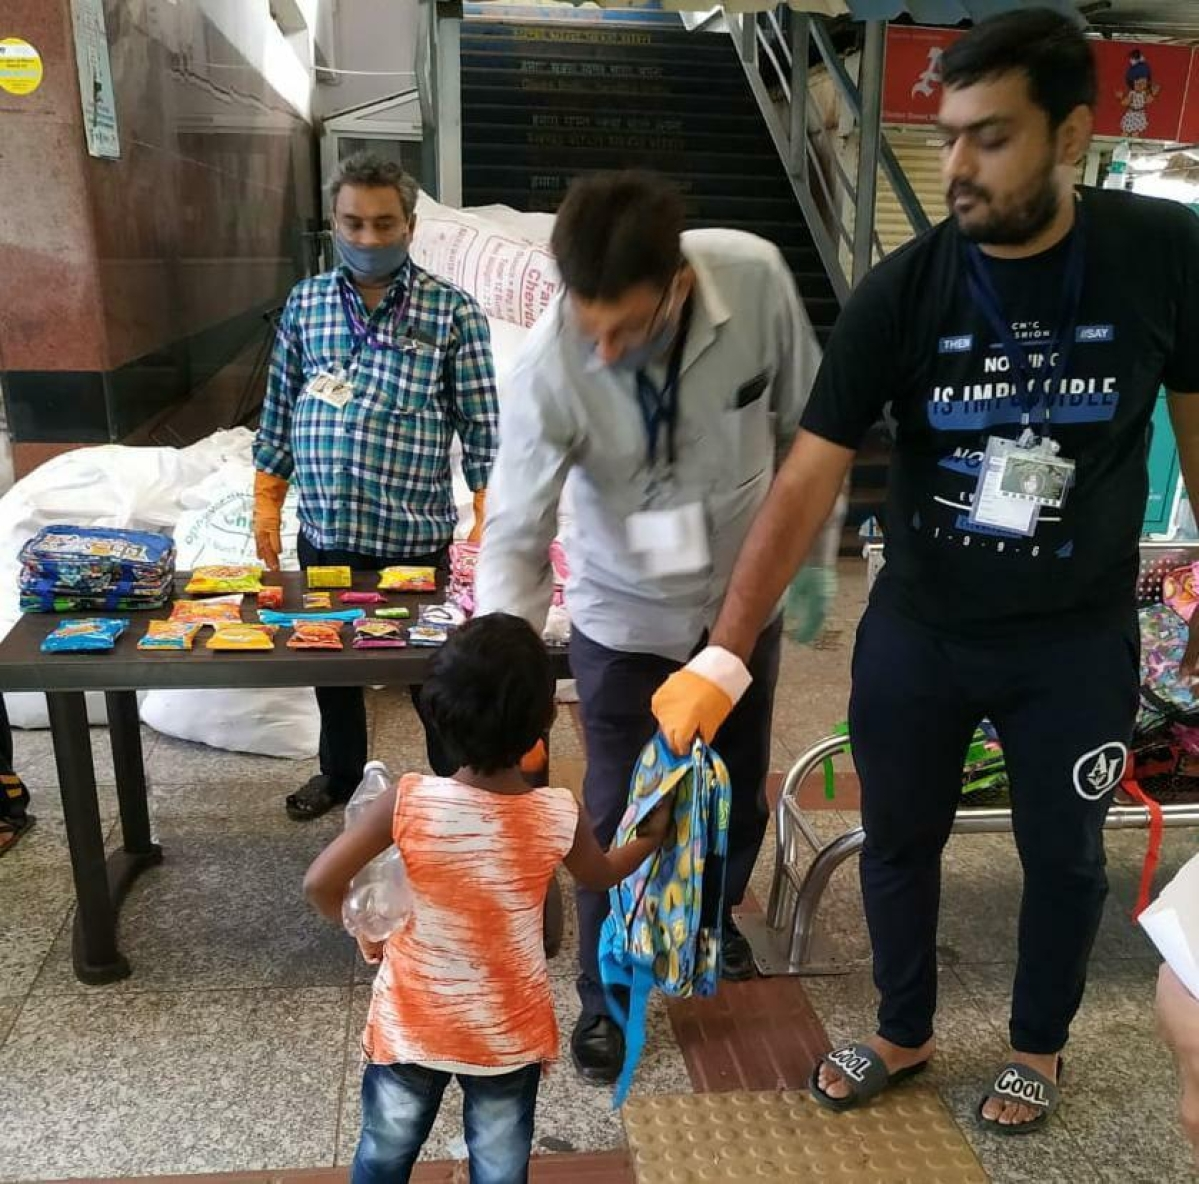 About 5.56 lakh food packets distributed to needy persons over Western Railway in the last 49 days